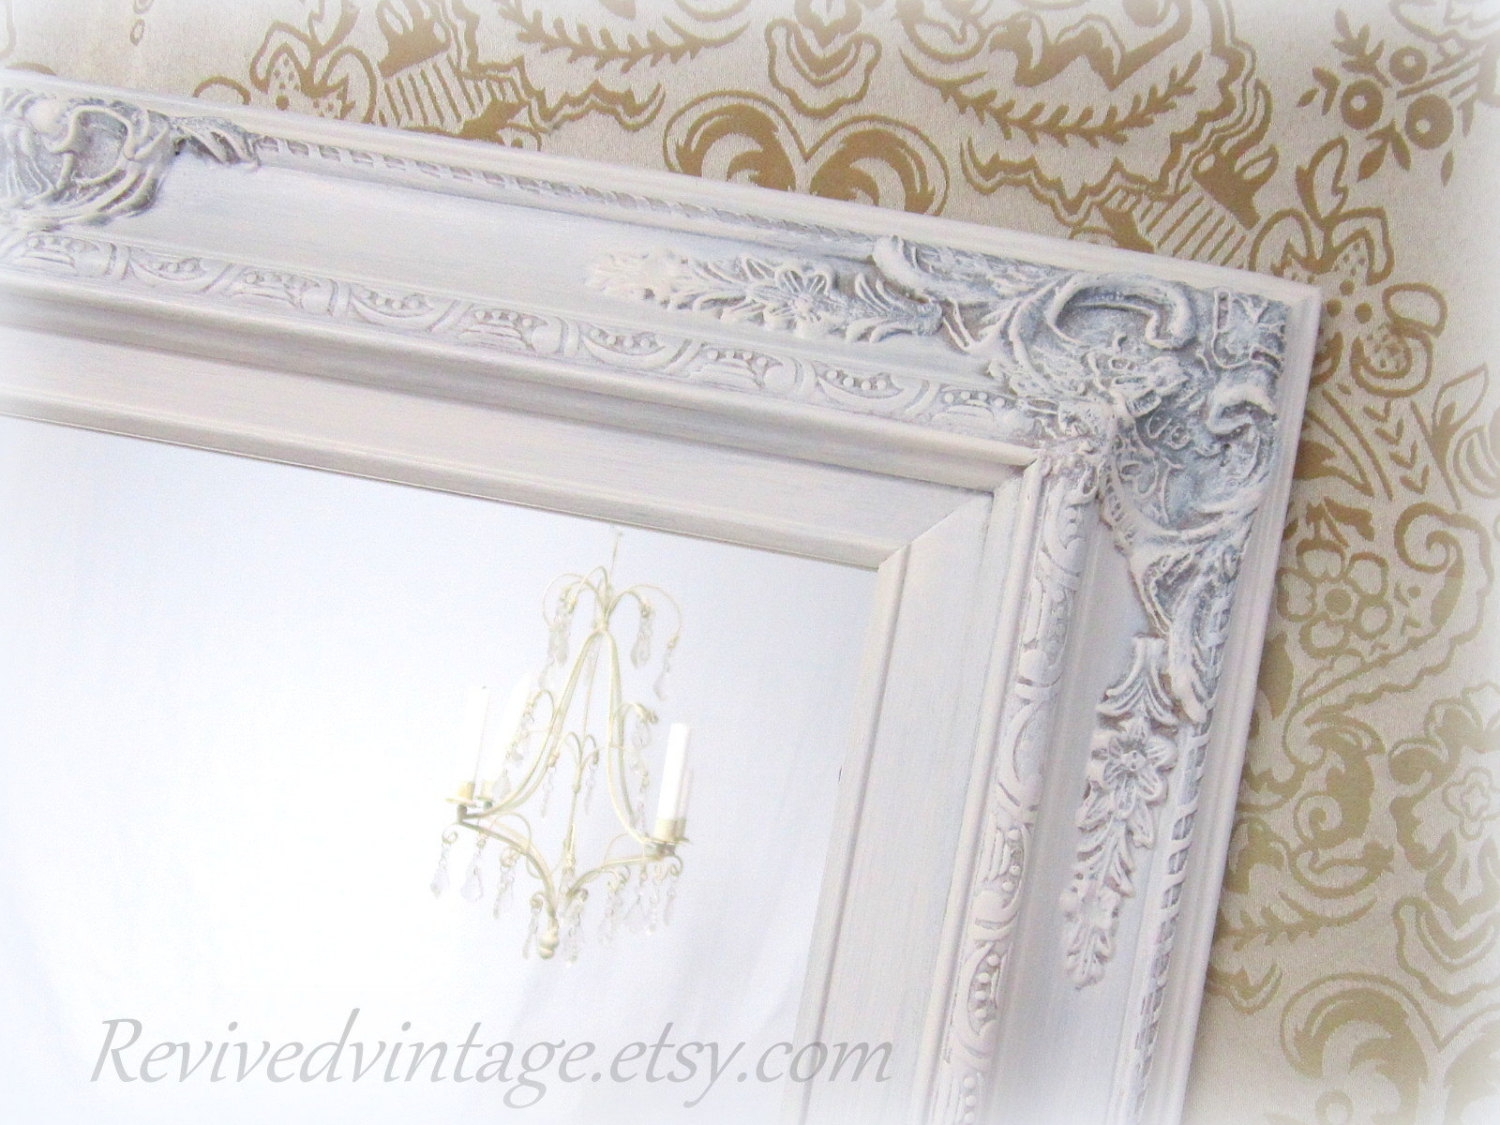 Large Wall Mirror Etsy In Large Ornate Mirrors For Sale (Image 11 of 15)